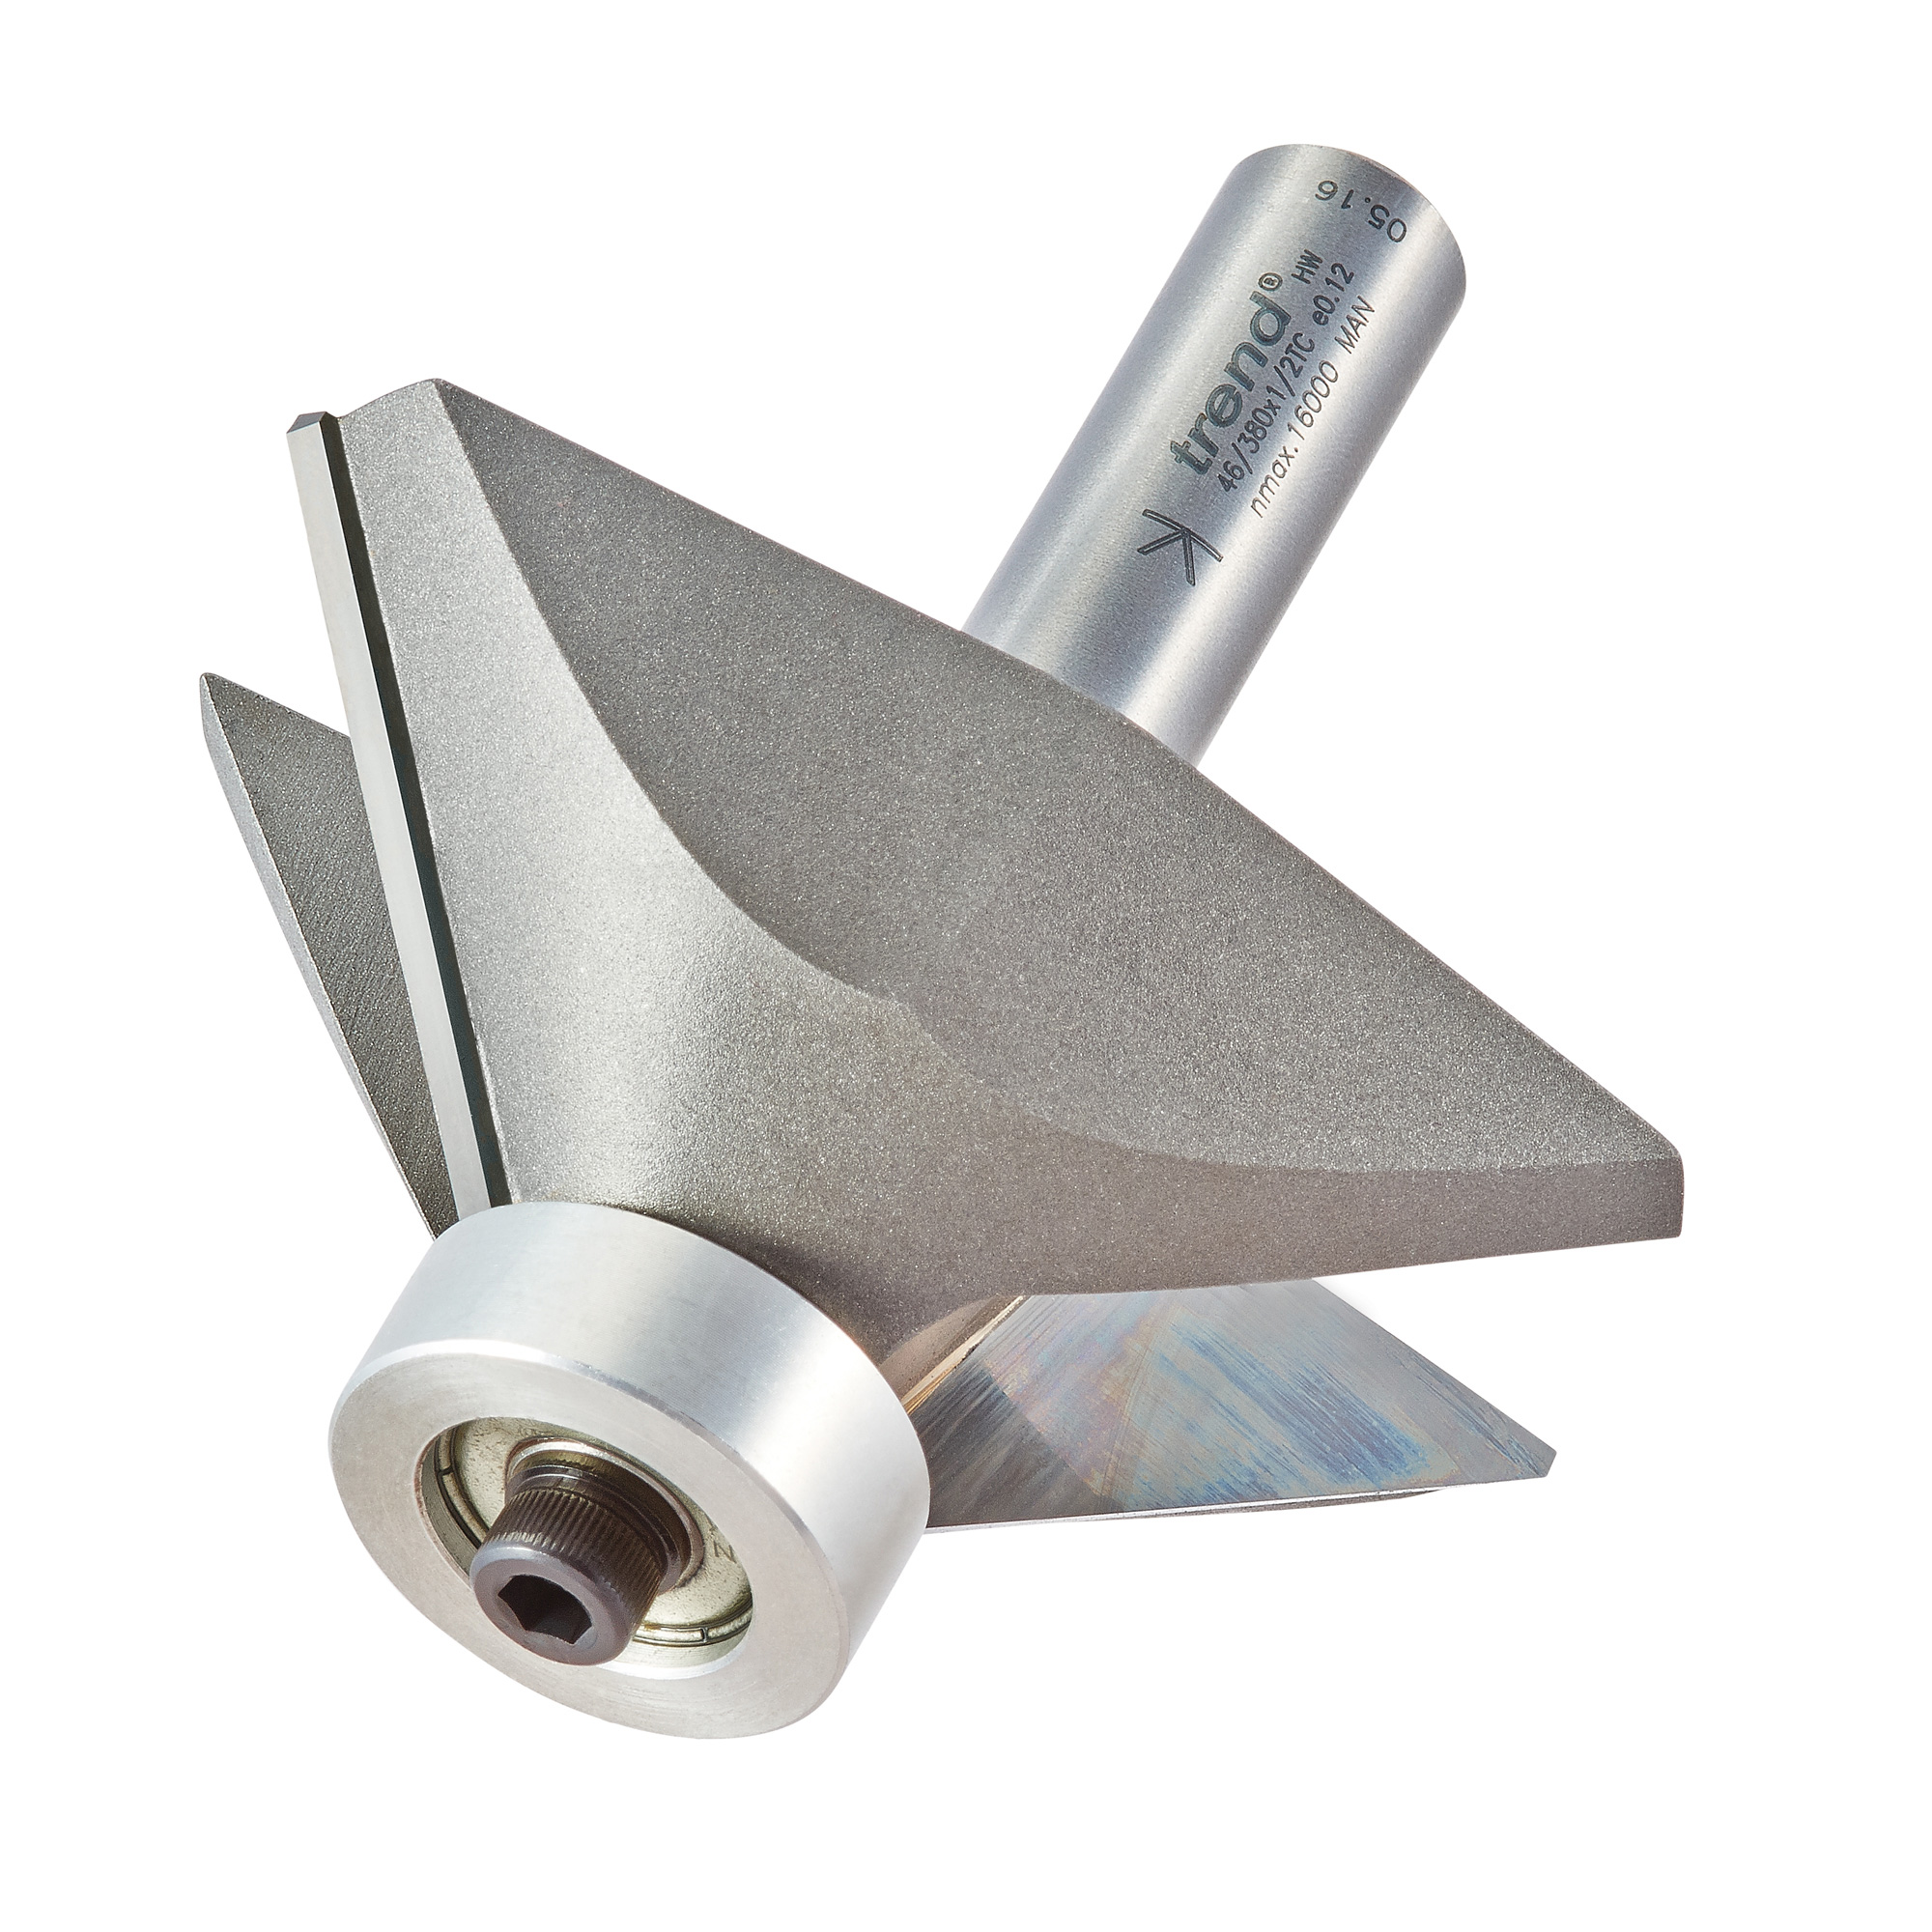 TREND 46/380X1/2TC BEARING GUIDED CHAMFER CUTTER 45 DEGREES